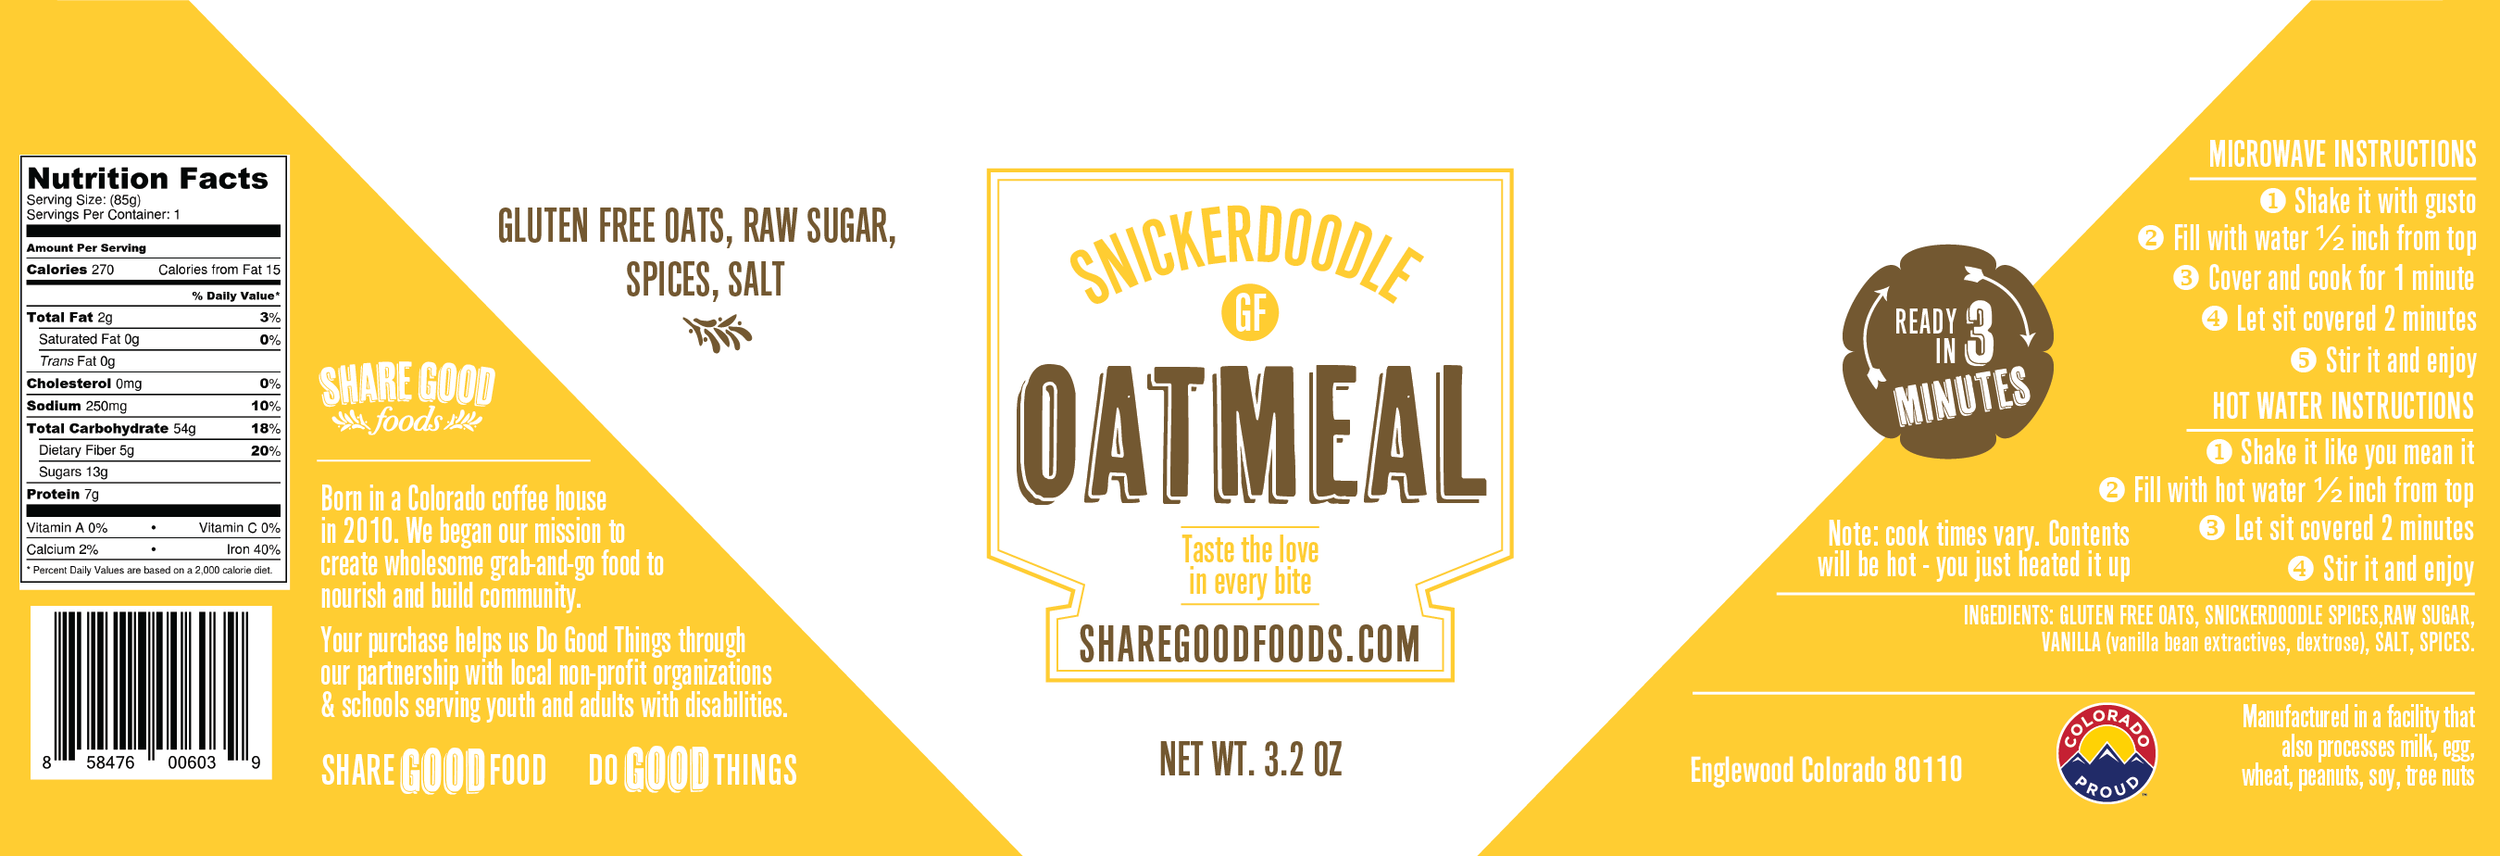 Snickerdoodle Oatmeal.png